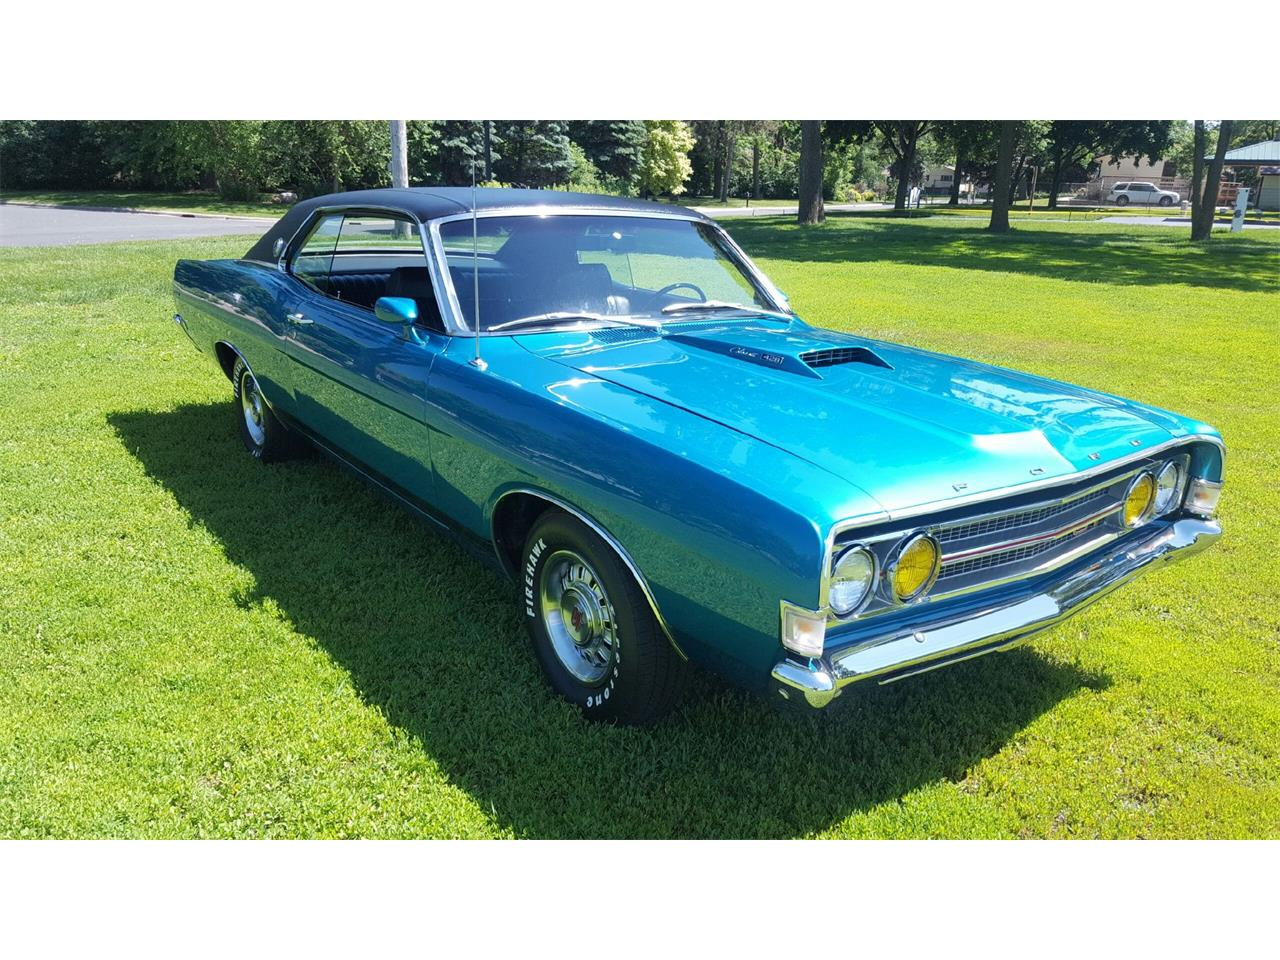 Large Picture of '69 Torino located in Minnesota Auction Vehicle Offered by Classic Rides and Rods - L8I4